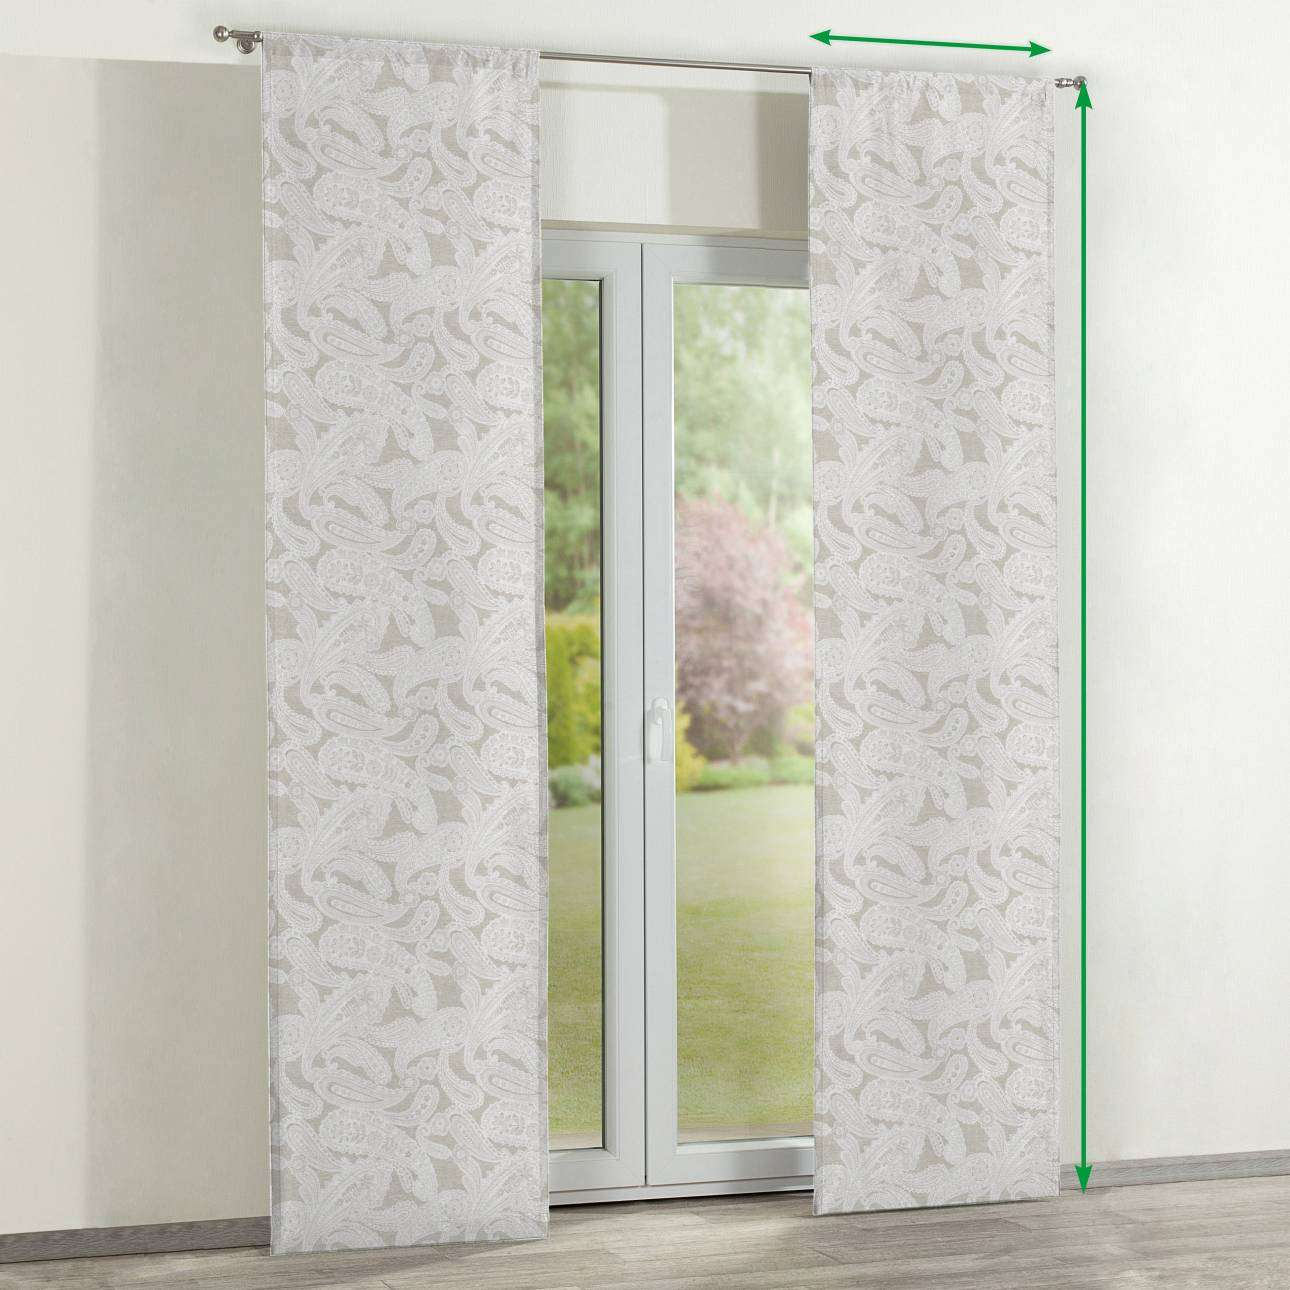 Slot panel curtains – Set of 2 in collection Rustica, fabric: 138-10